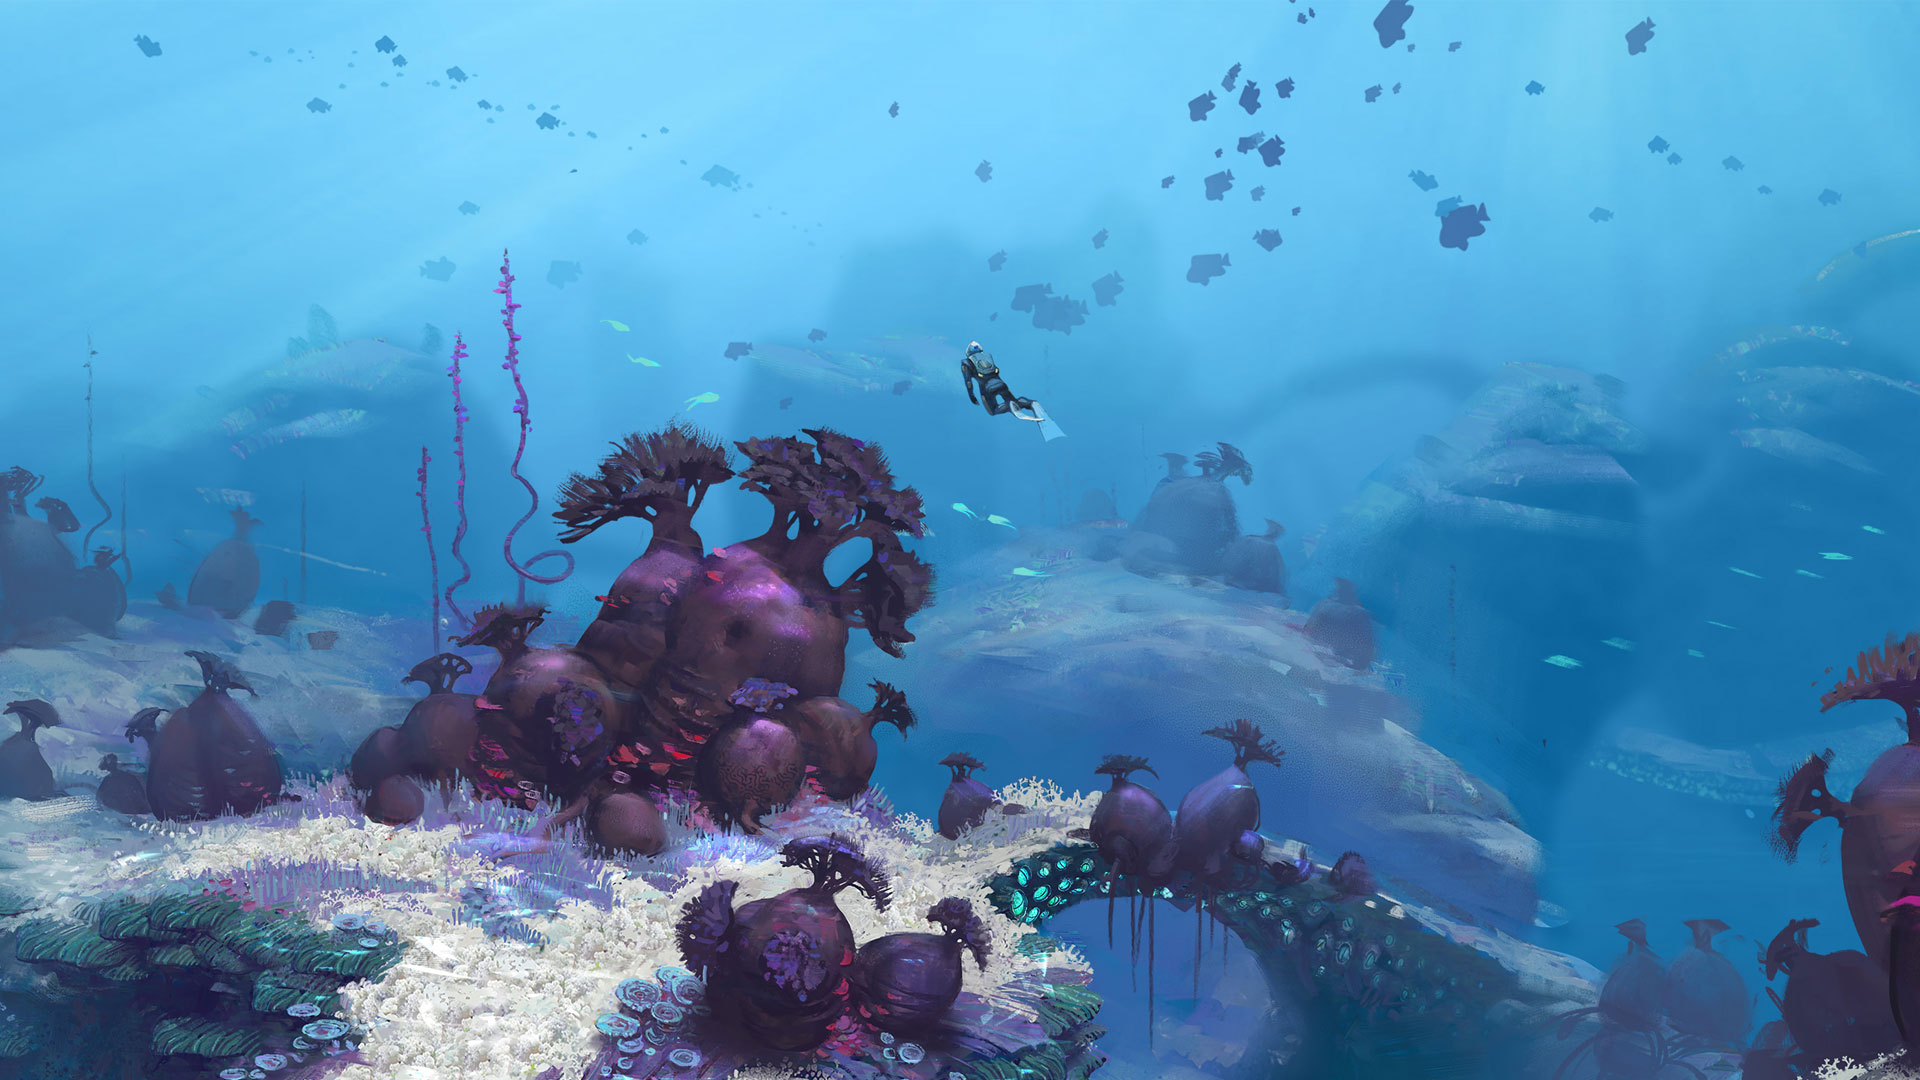 Subnautica Below Zero Wallpapers | Backgrounds - Read games review, play online games & download ...